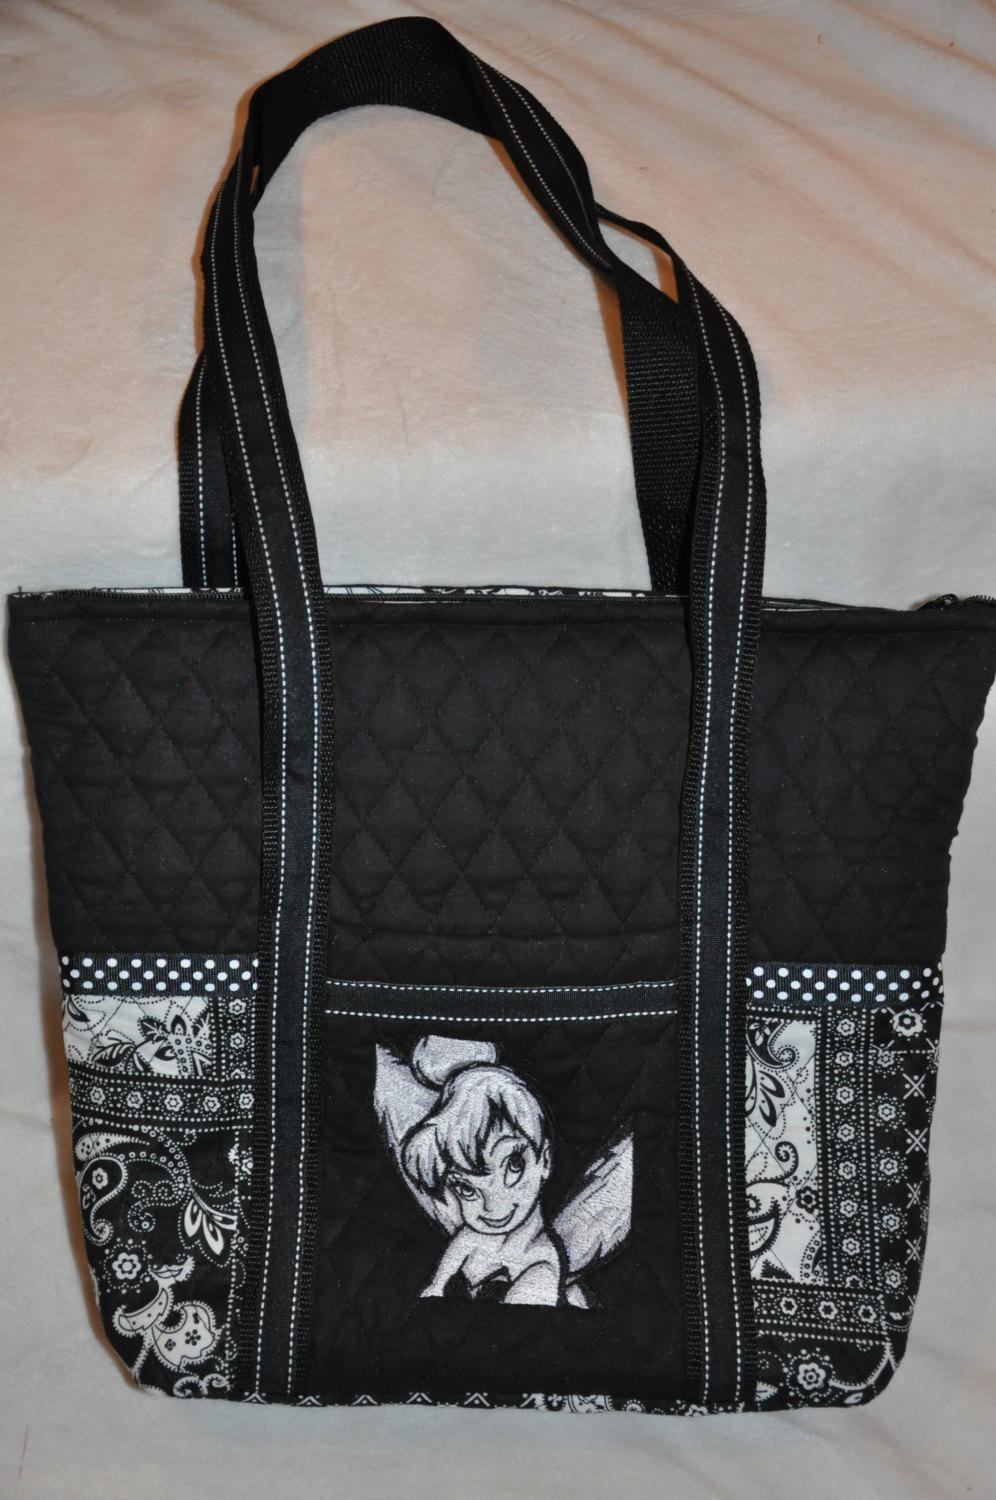 A bag with Tinker Bell head embroidered on it